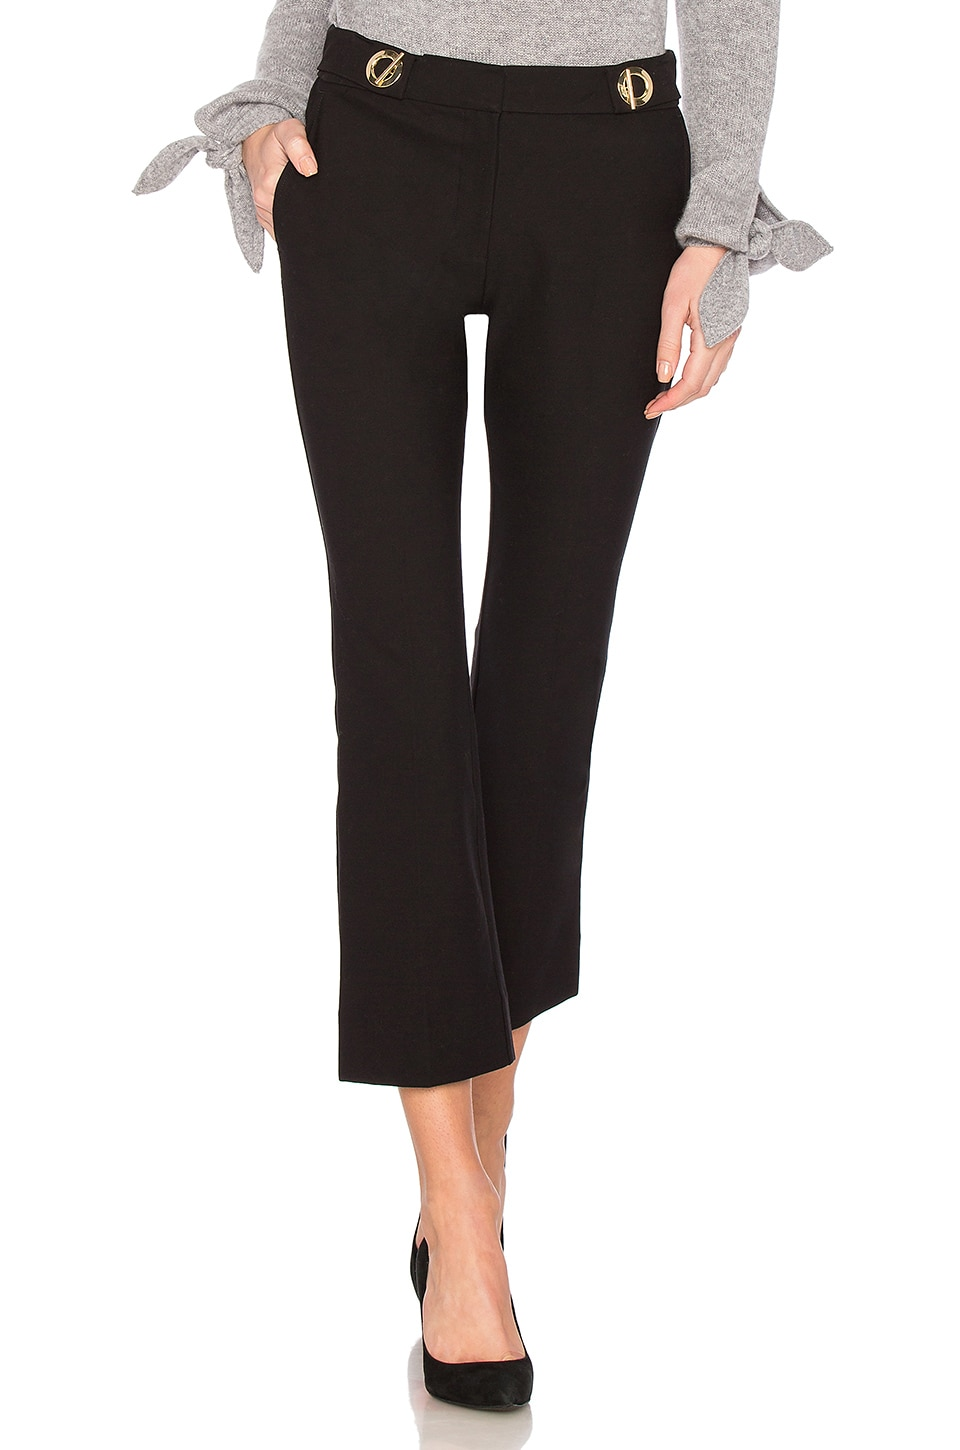 Grommet Detail Crop Trouser